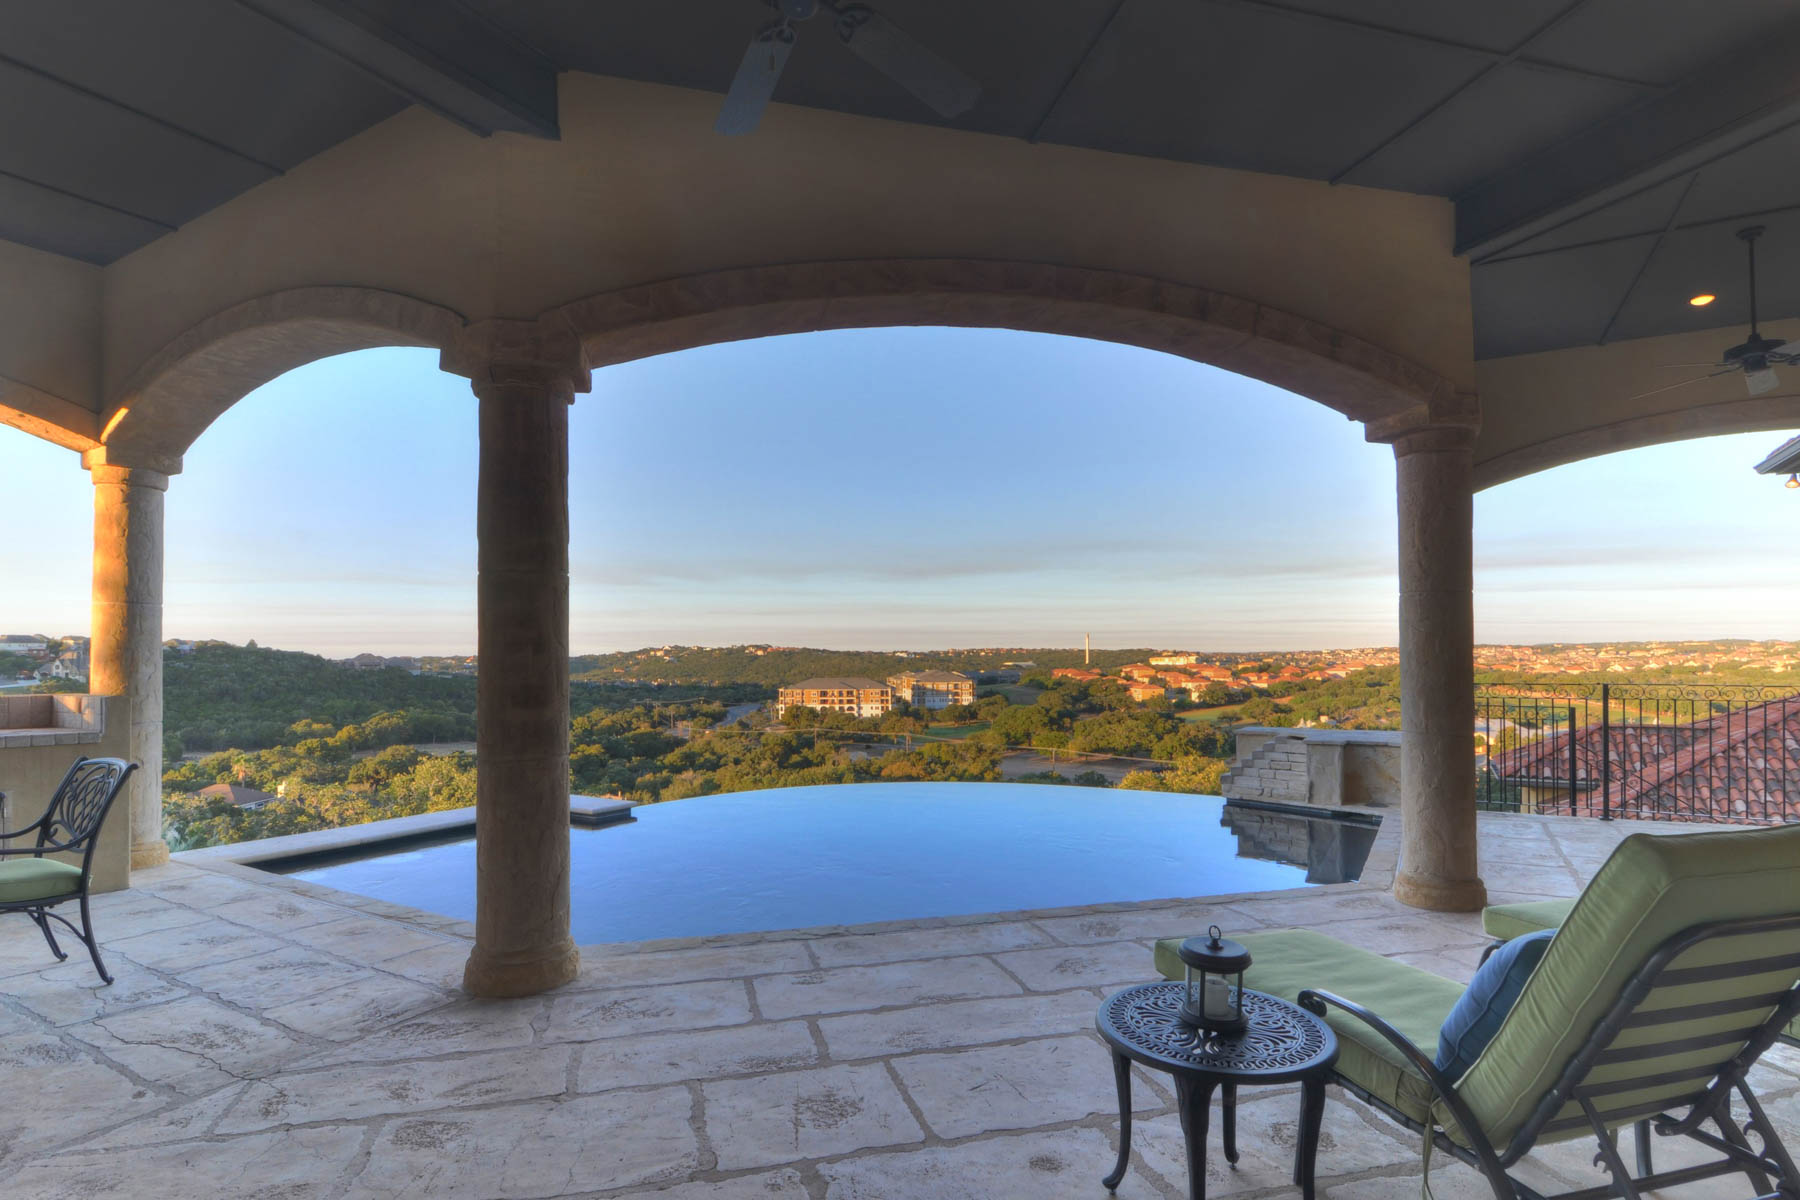 Maison unifamiliale pour l Vente à Million-Dollar Views in Summerglen 24803 Parview Cir Summerglen, San Antonio, Texas, 78260 États-Unis